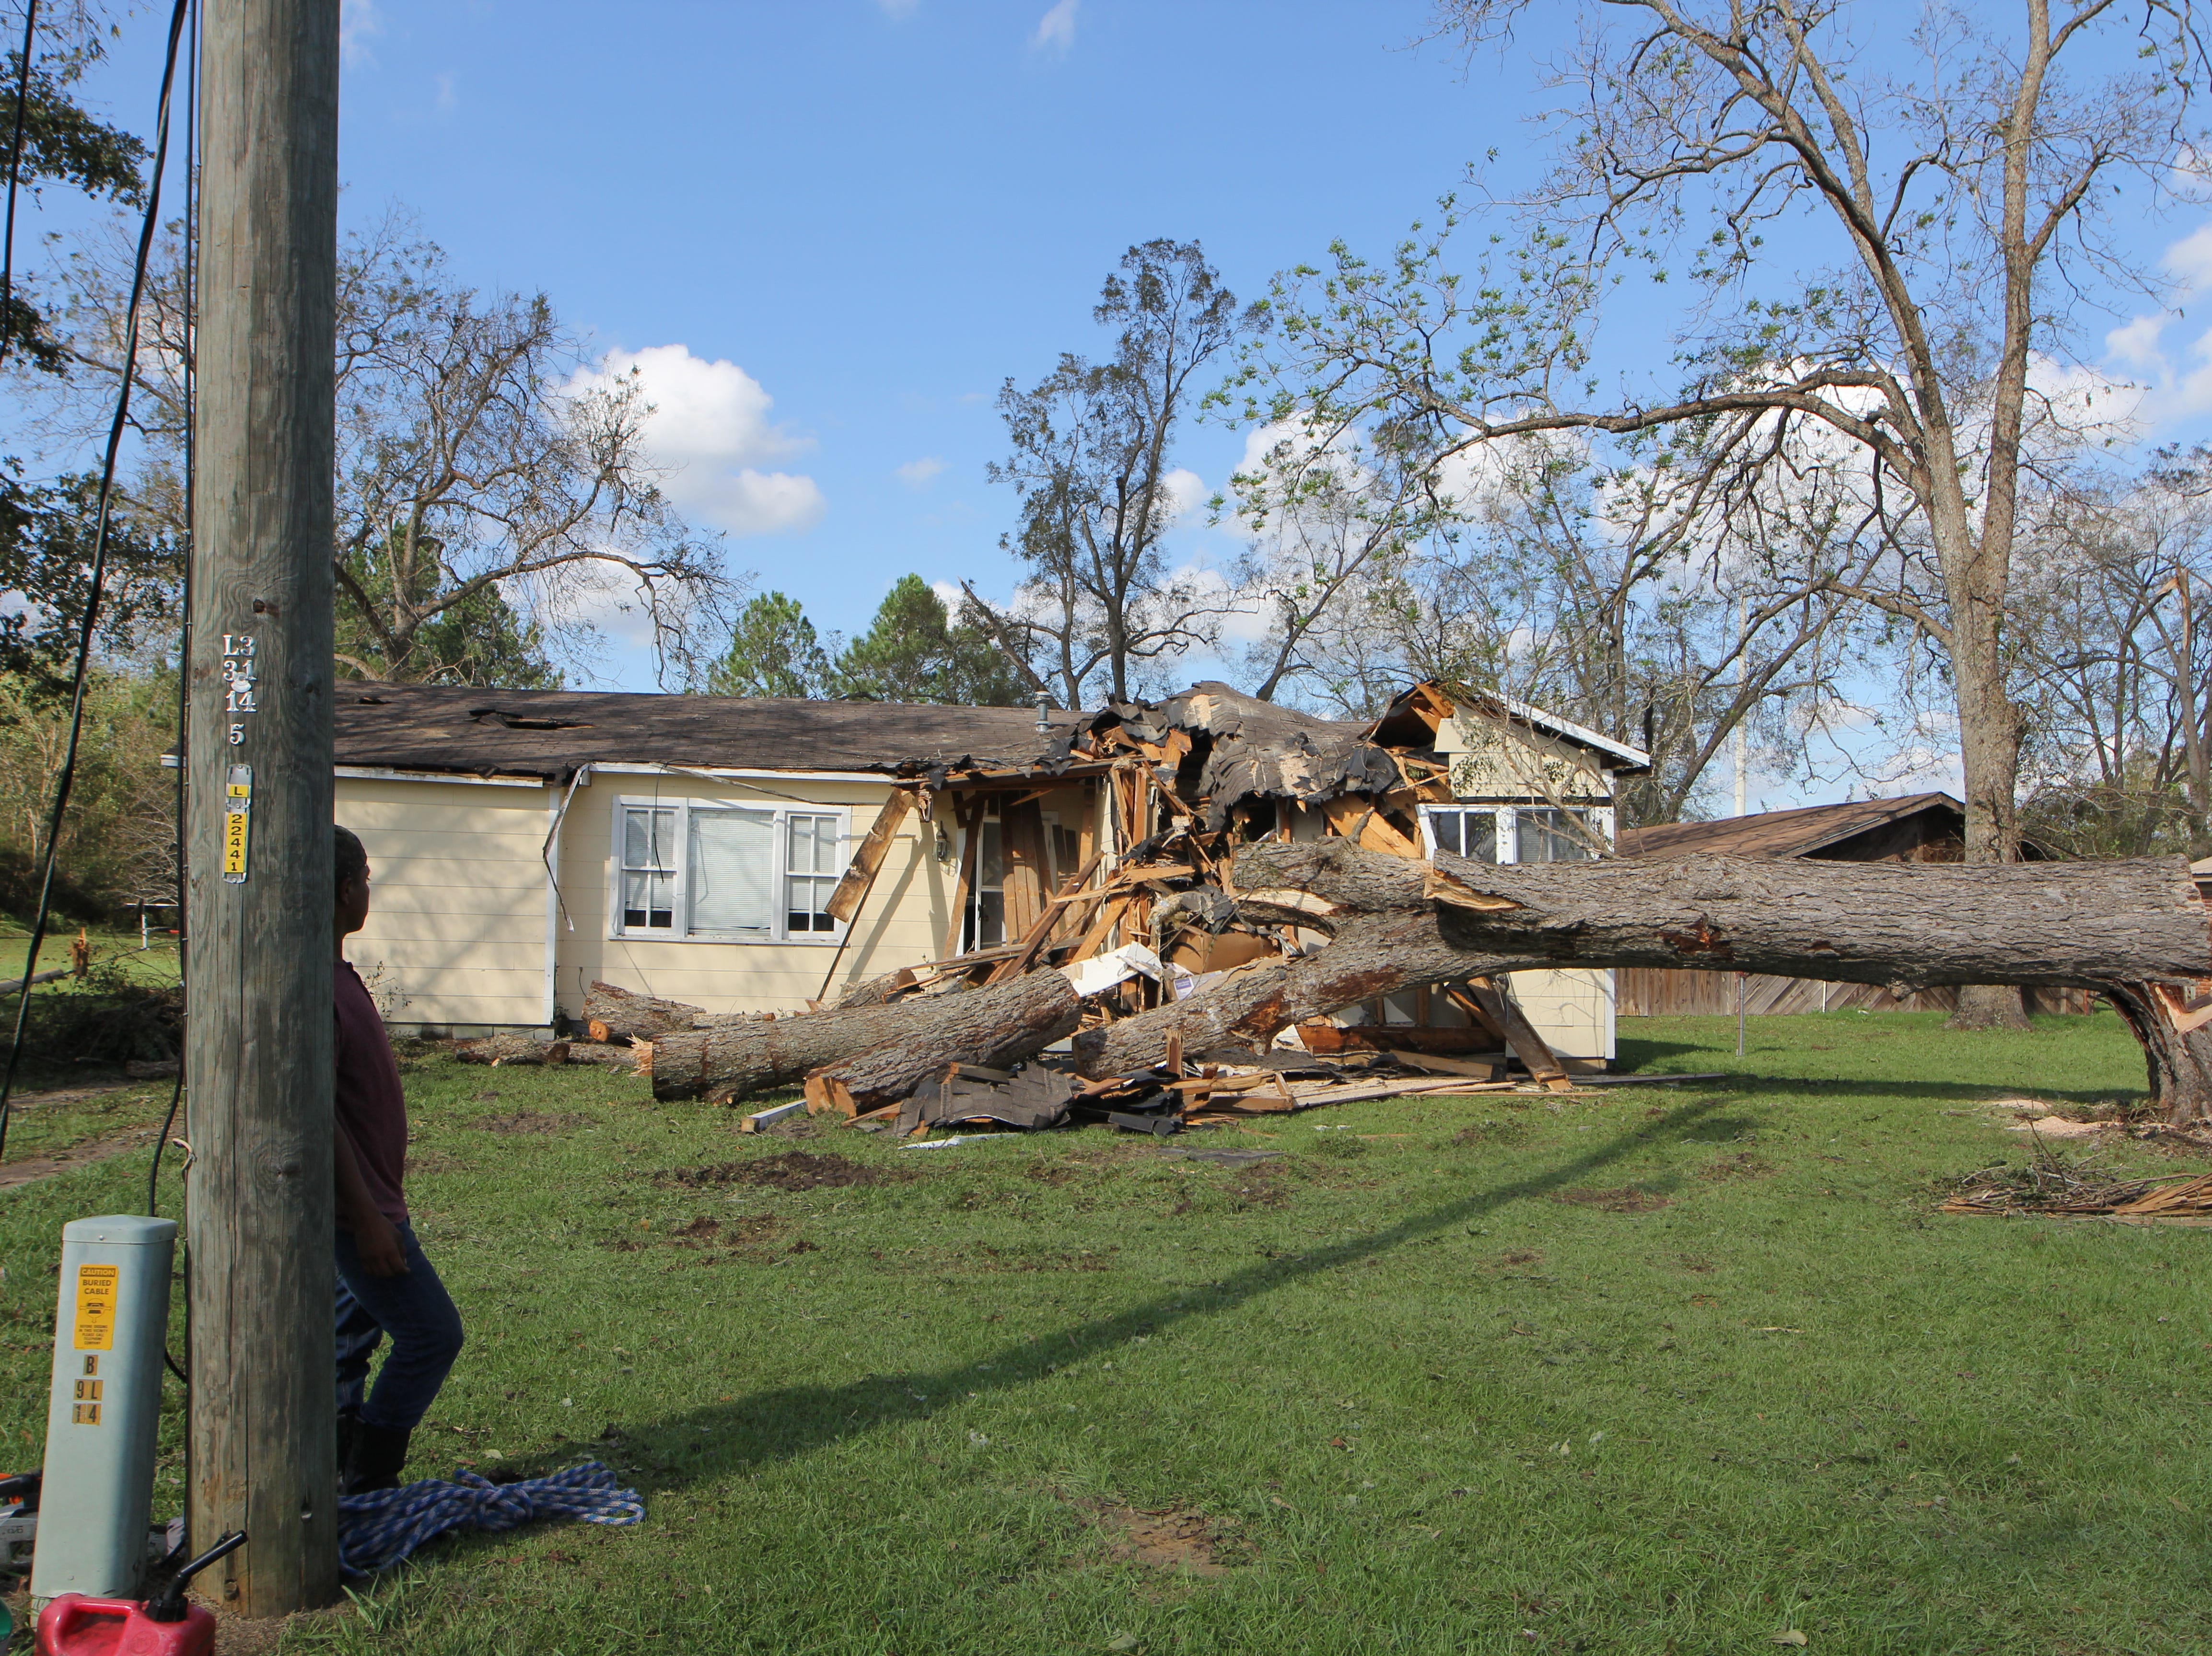 A large tree uprooted by Hurricane Michael smashes through a home in Greensboro, Gadsden County.